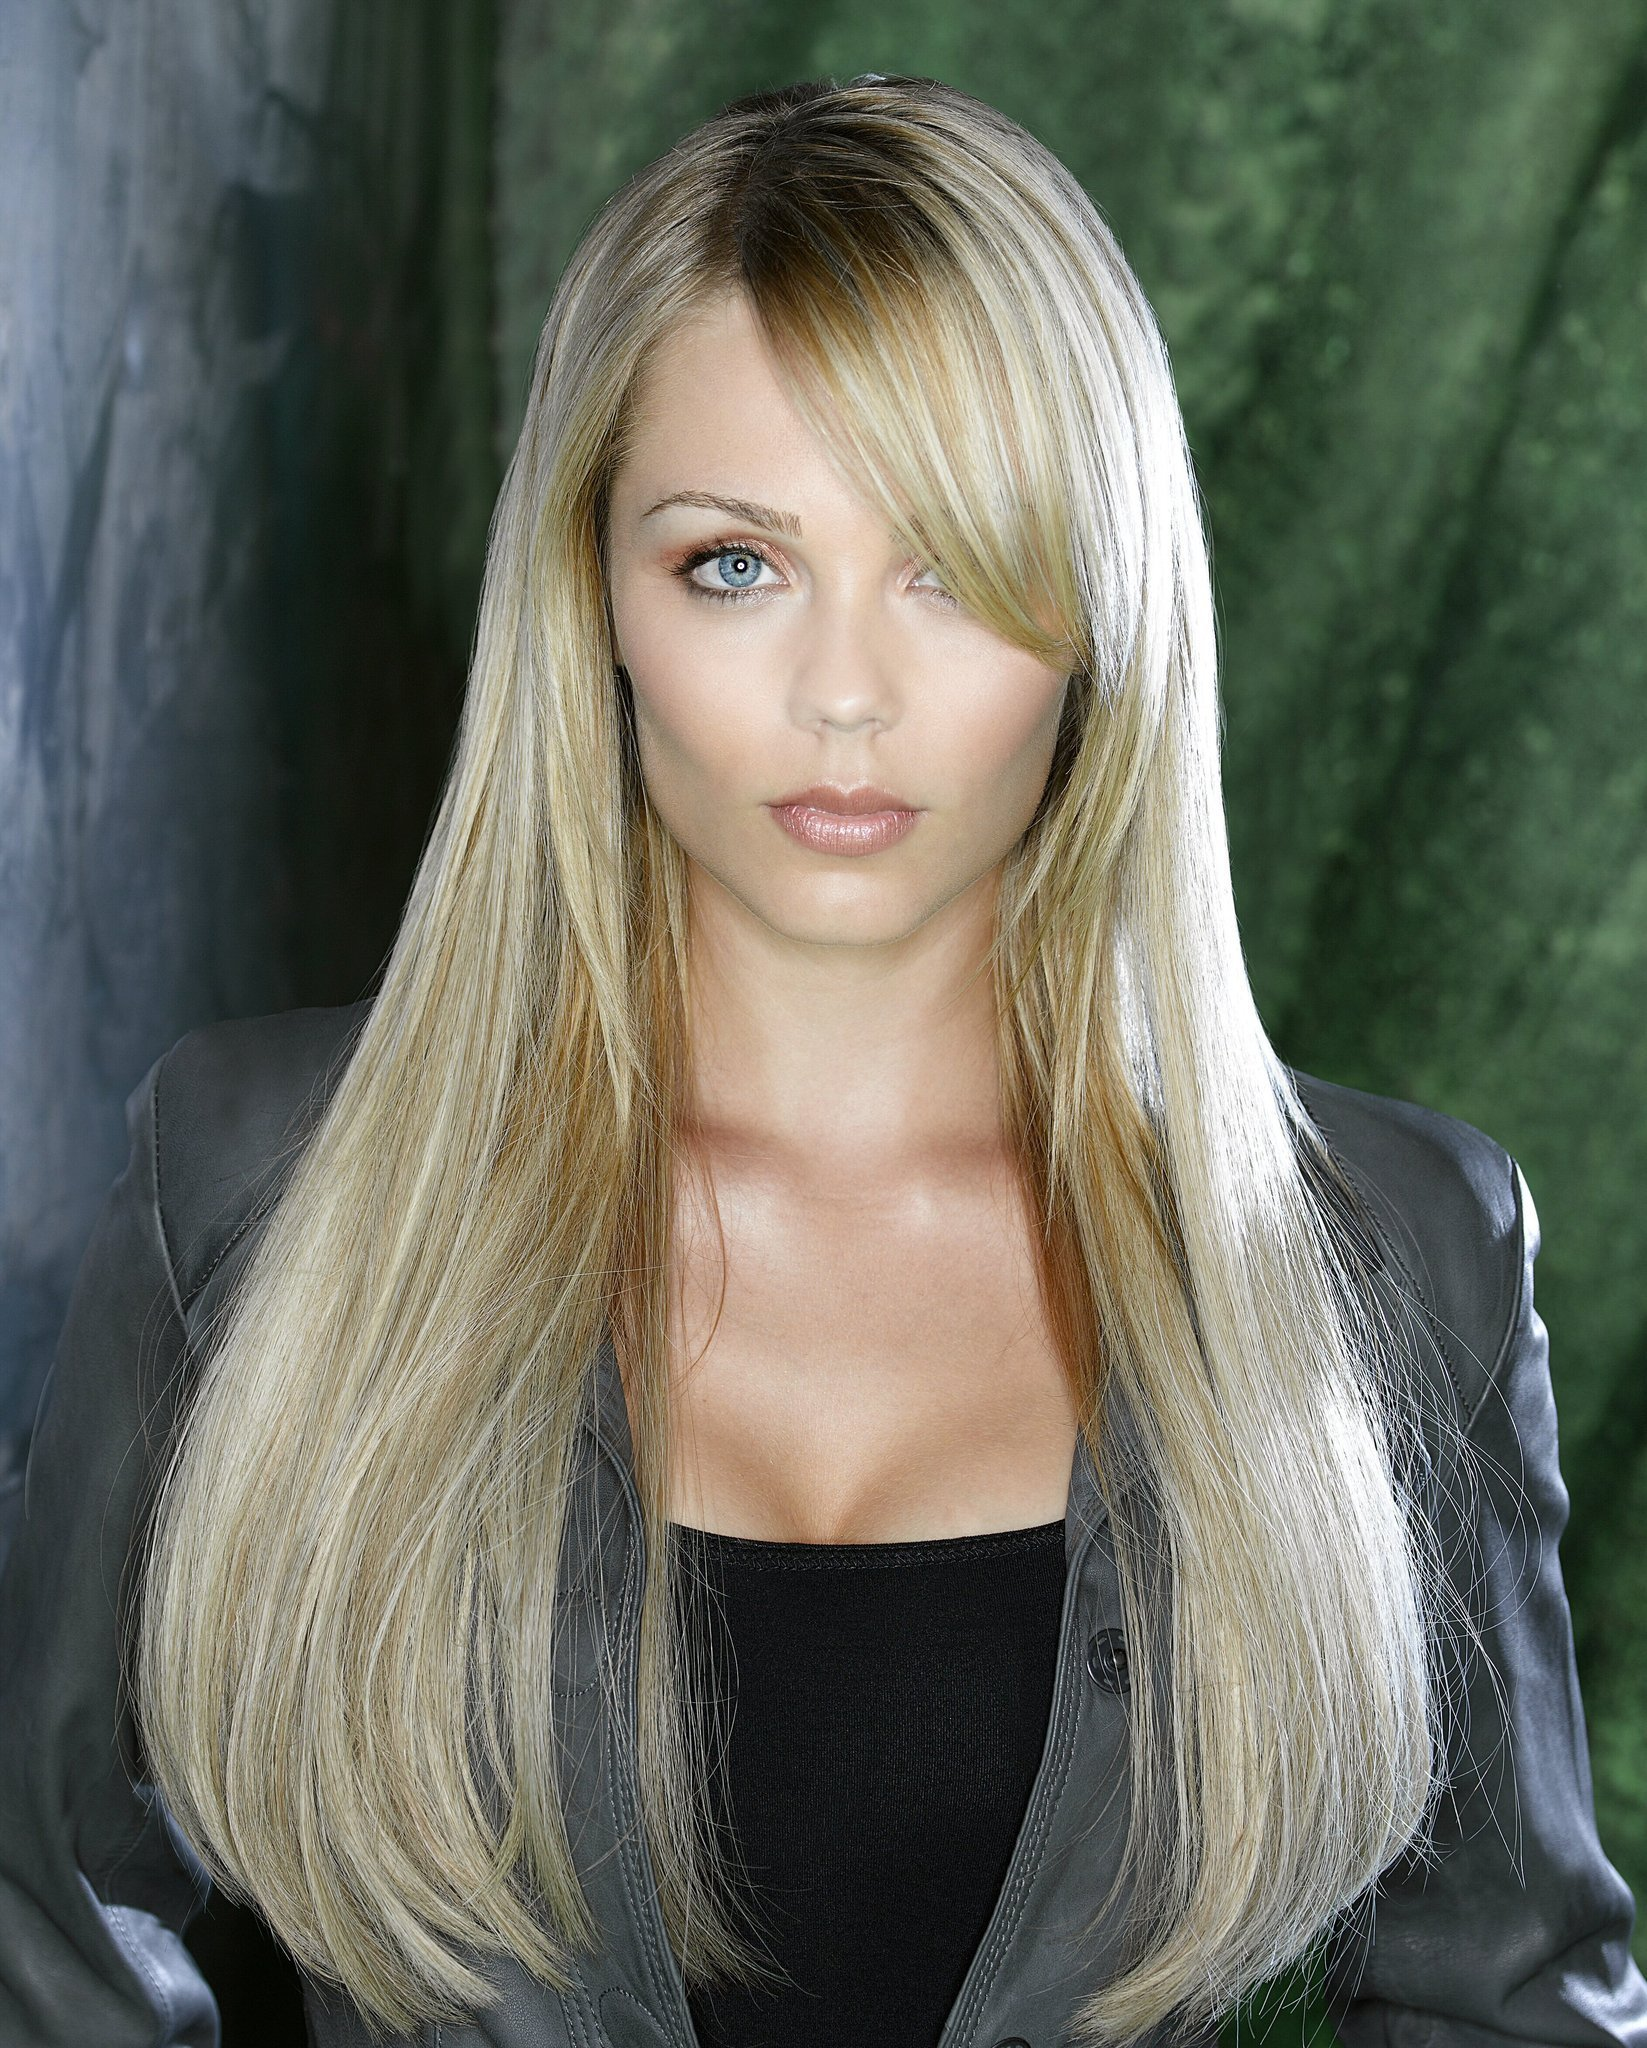 vandervoort Actress laura